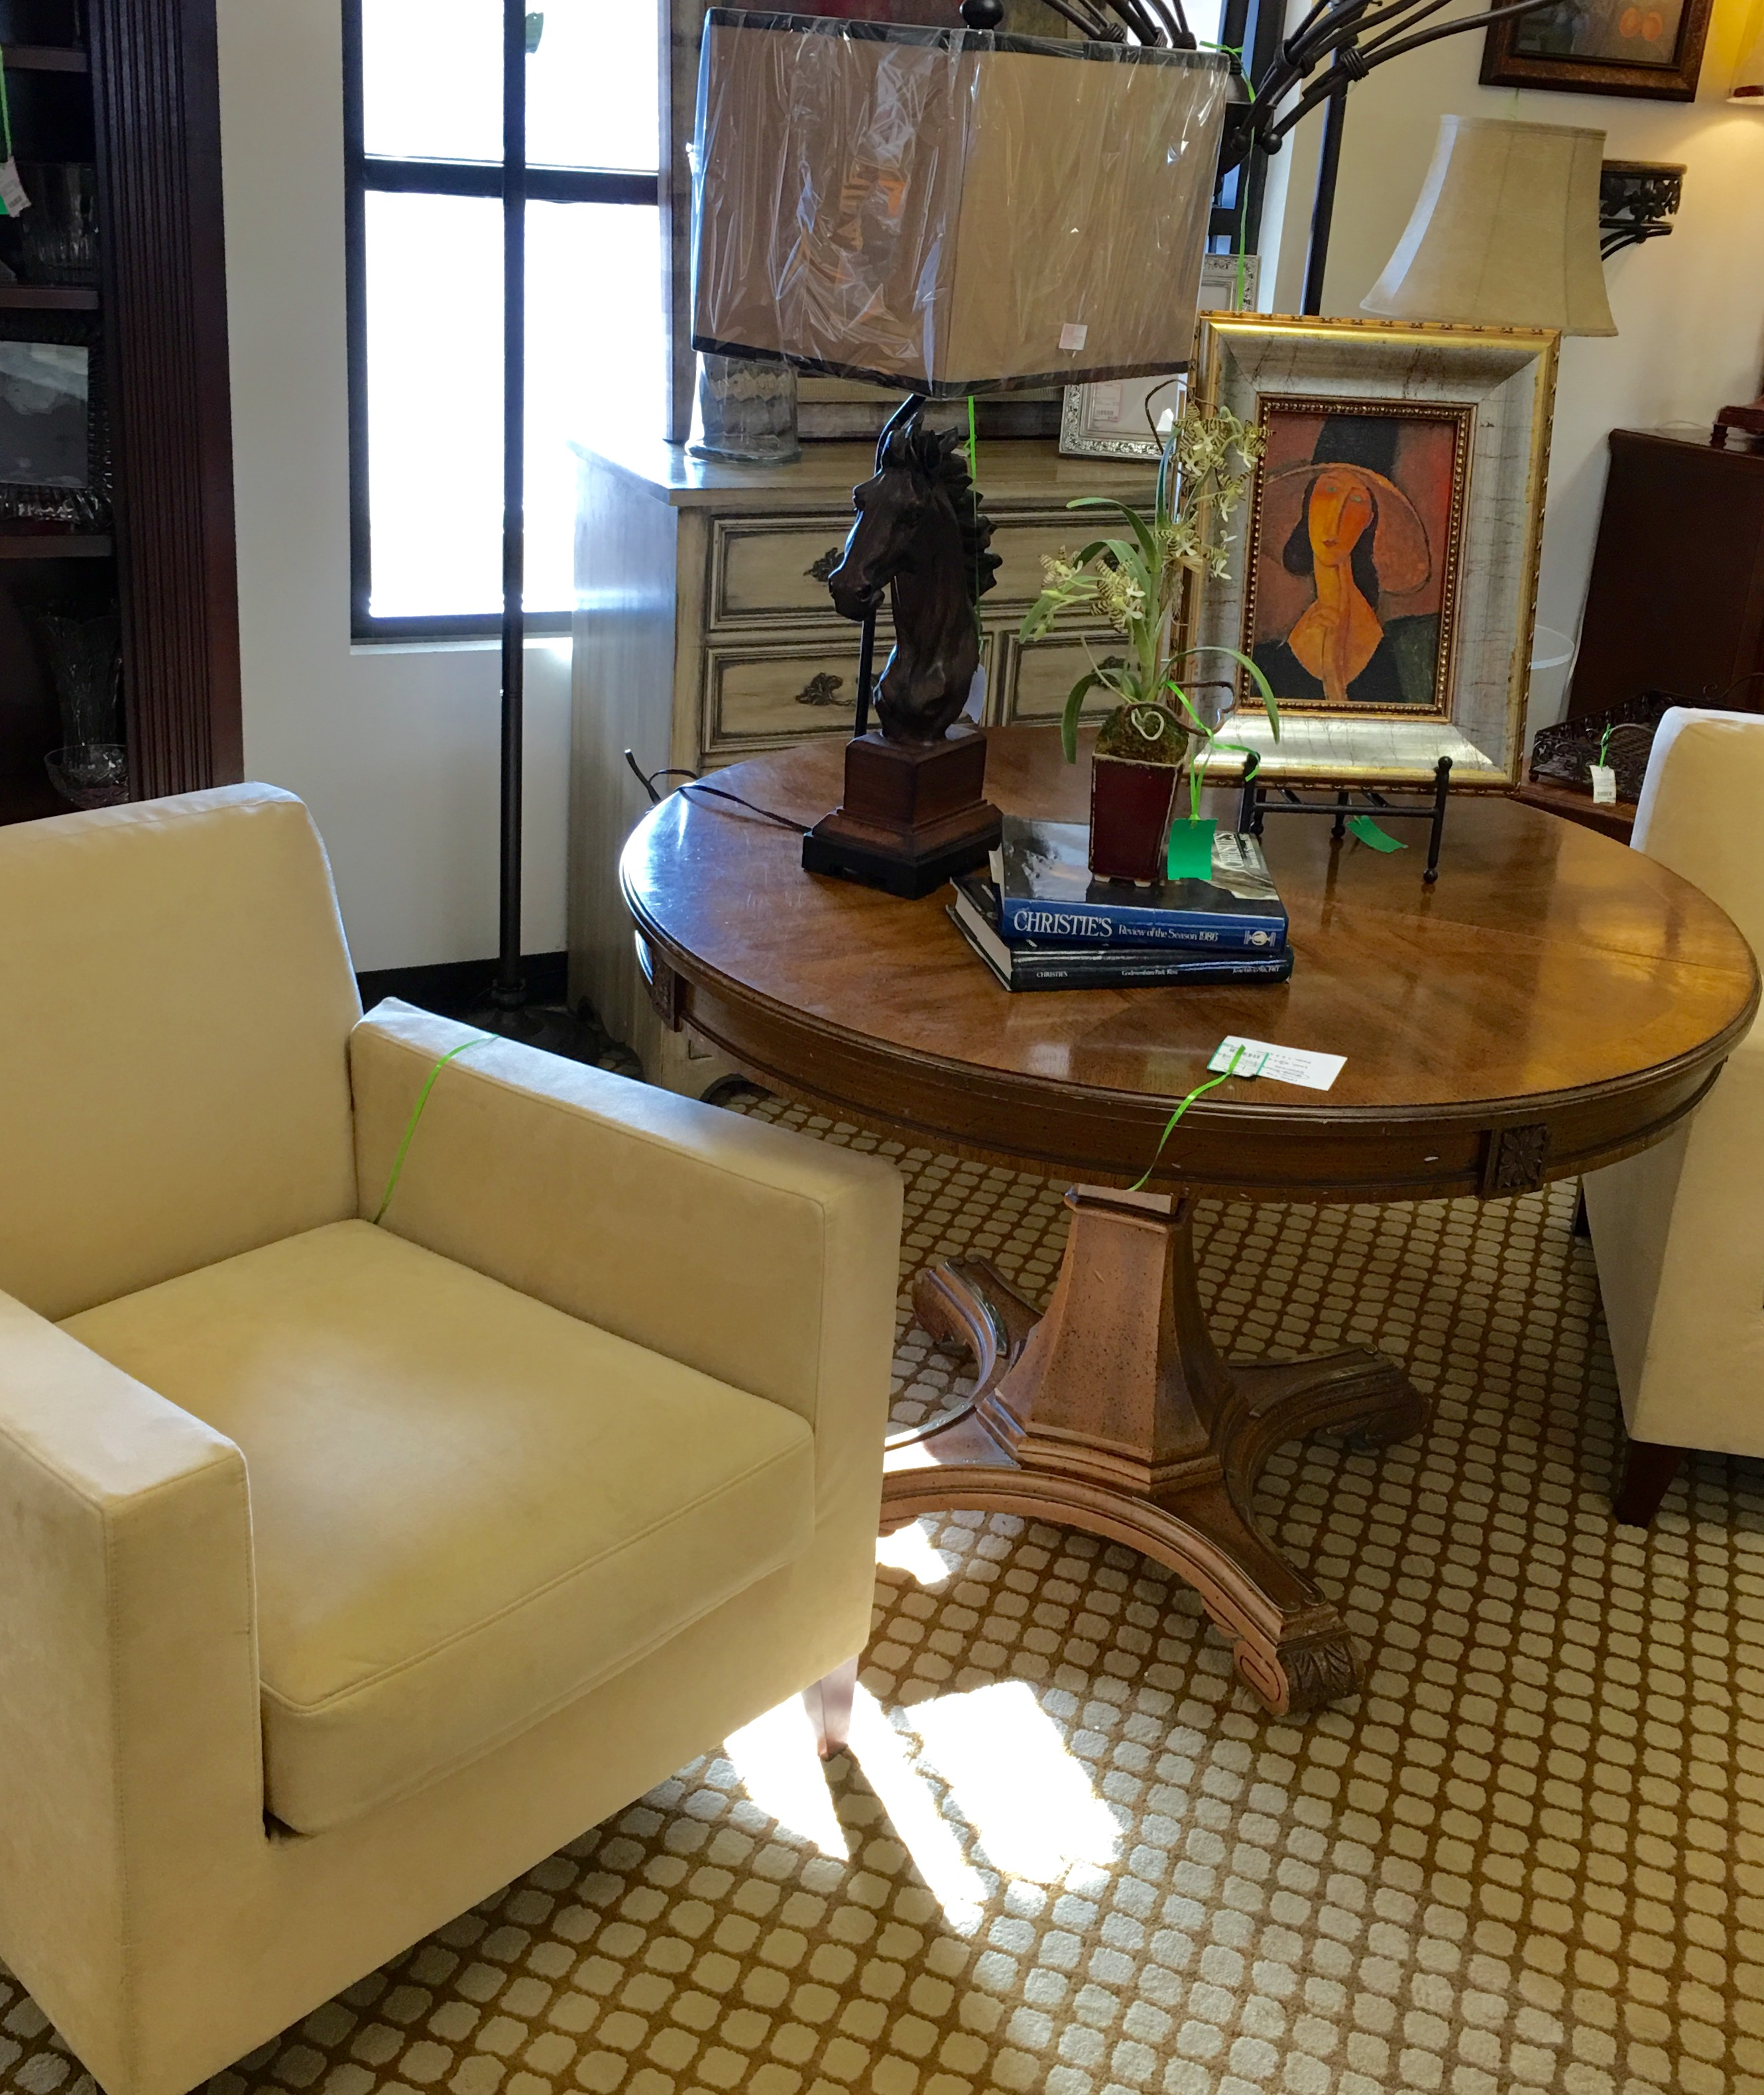 Consignment Furniture Suede Cream Chair And Round Table